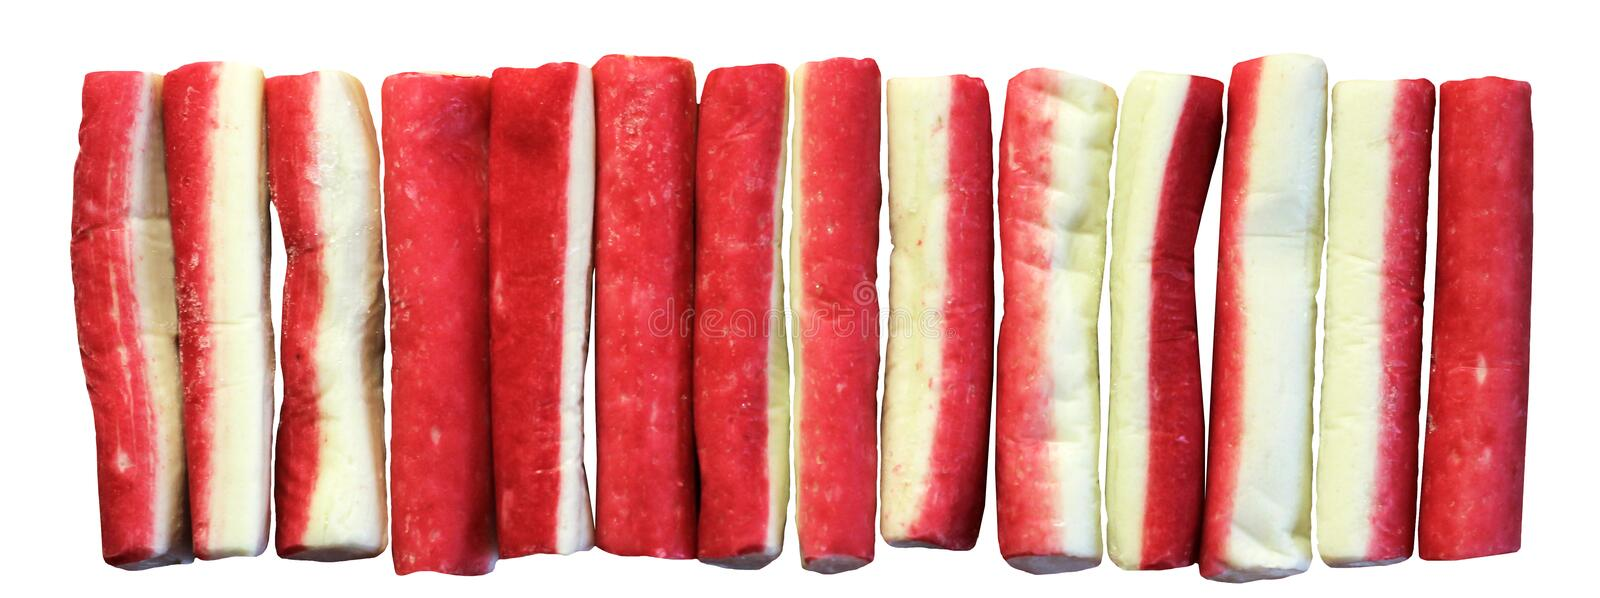 Crab sticks group isolated on white background, top view stock photo